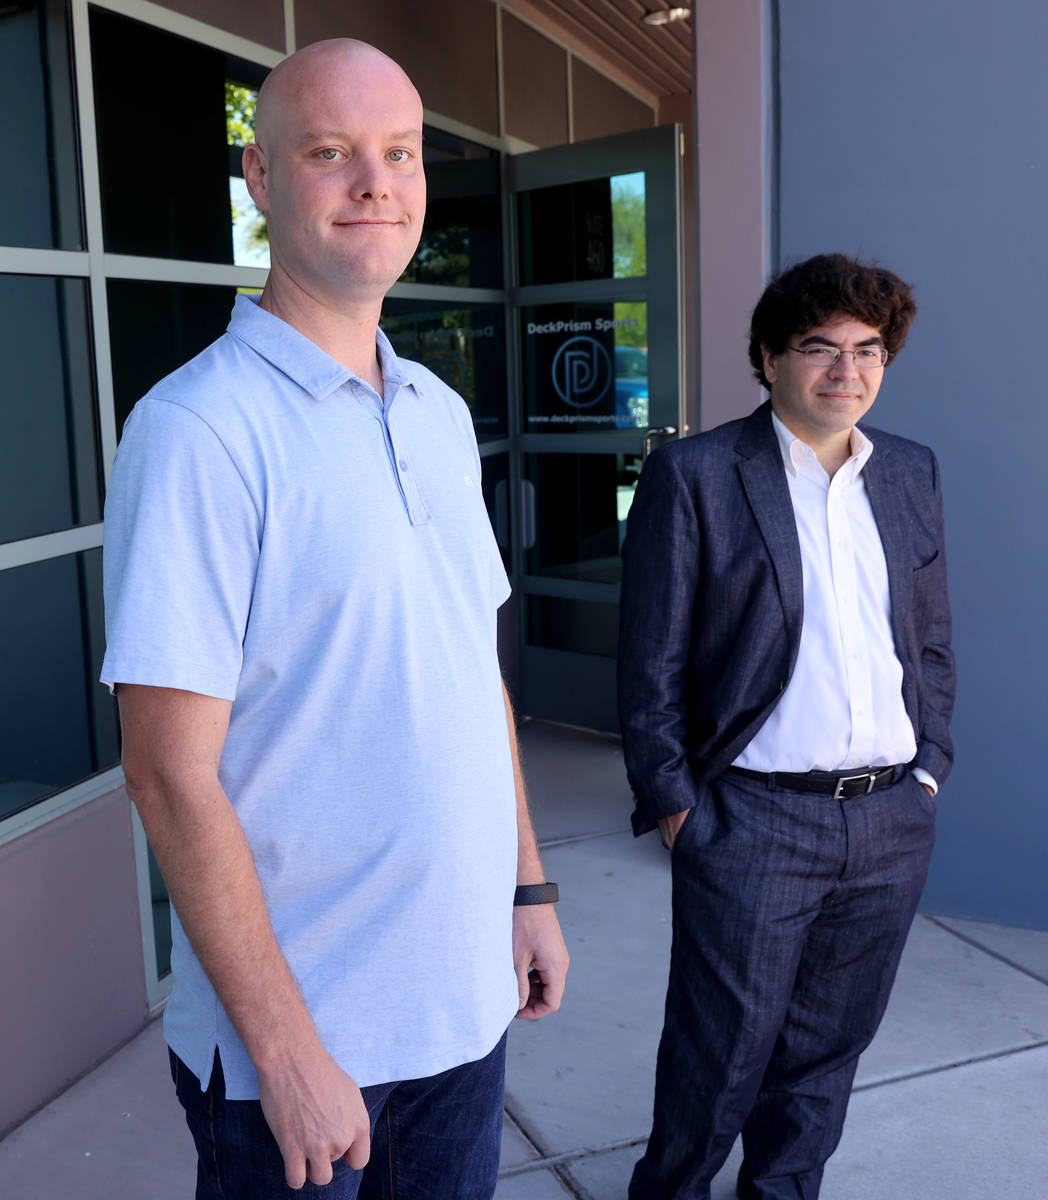 Matthew Davidow, left, and Ed Miller, co-founders of in-play betting company Deck Prism Sports, ...